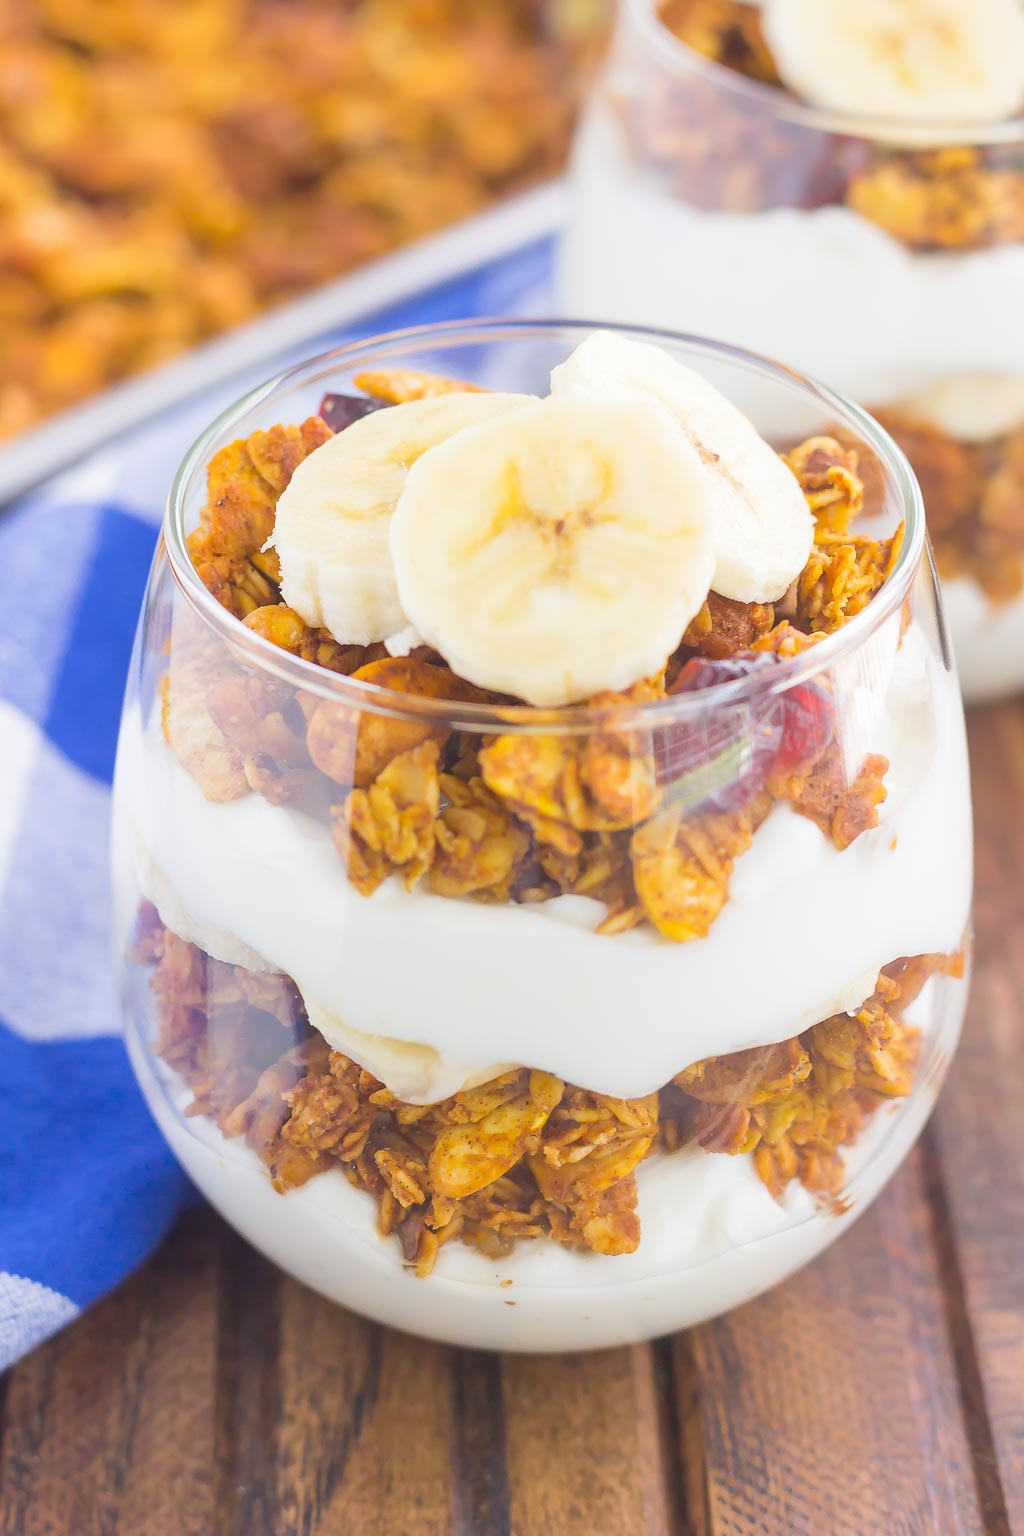 Pumpkin Banana Yogurt Parfait makes a deliciously simple breakfast or snack. Packed with vanilla yogurt, pumpkin spice granola and fresh banana slices, this healthier dish is easy to make and perfect for fall!